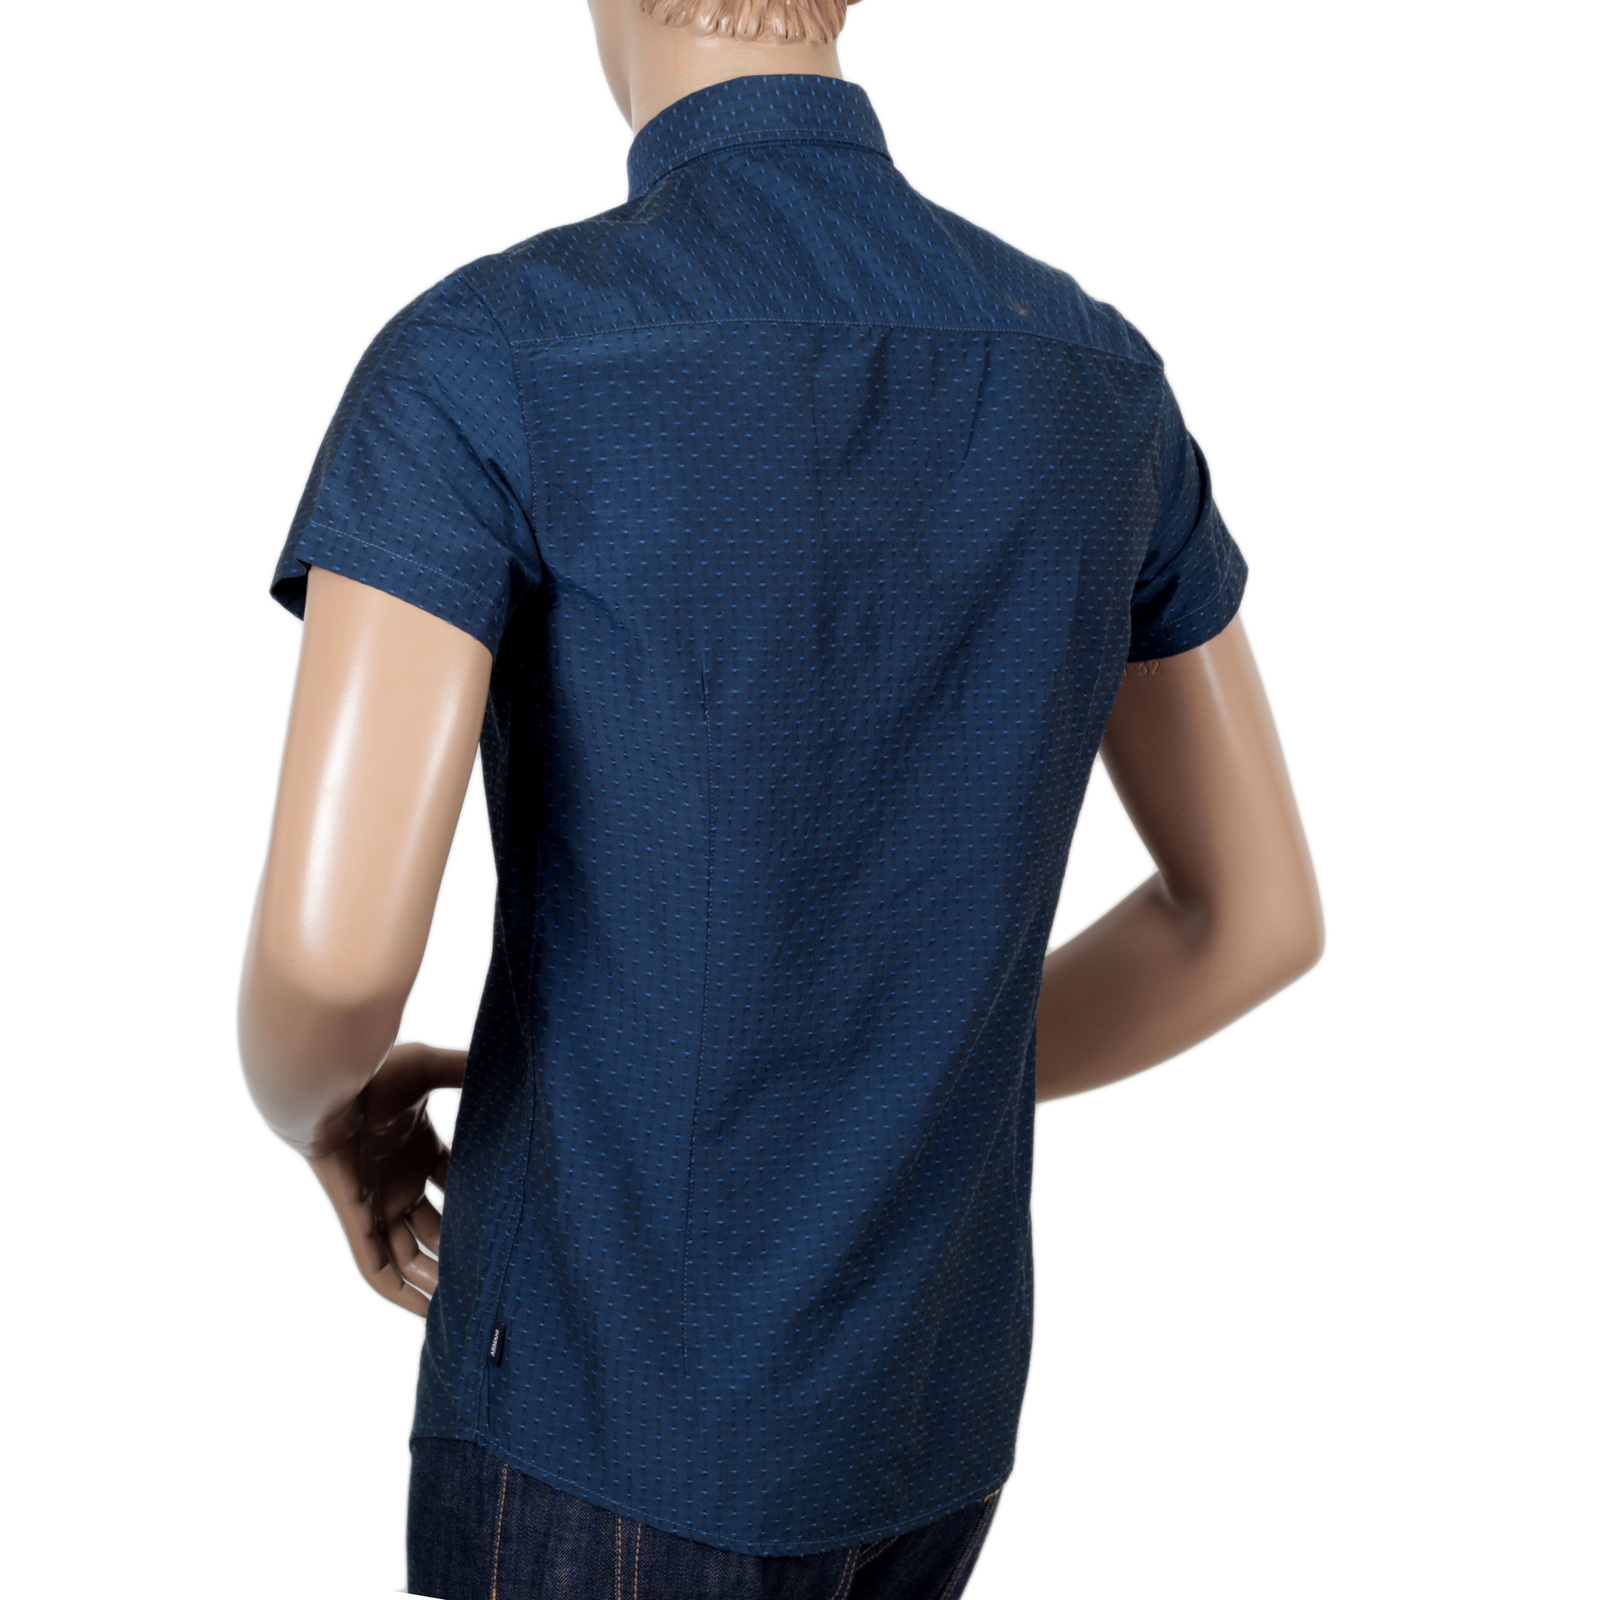 7d7afb237 Armani Jeans Mens Tipped Short Sleeve Polo Shirt